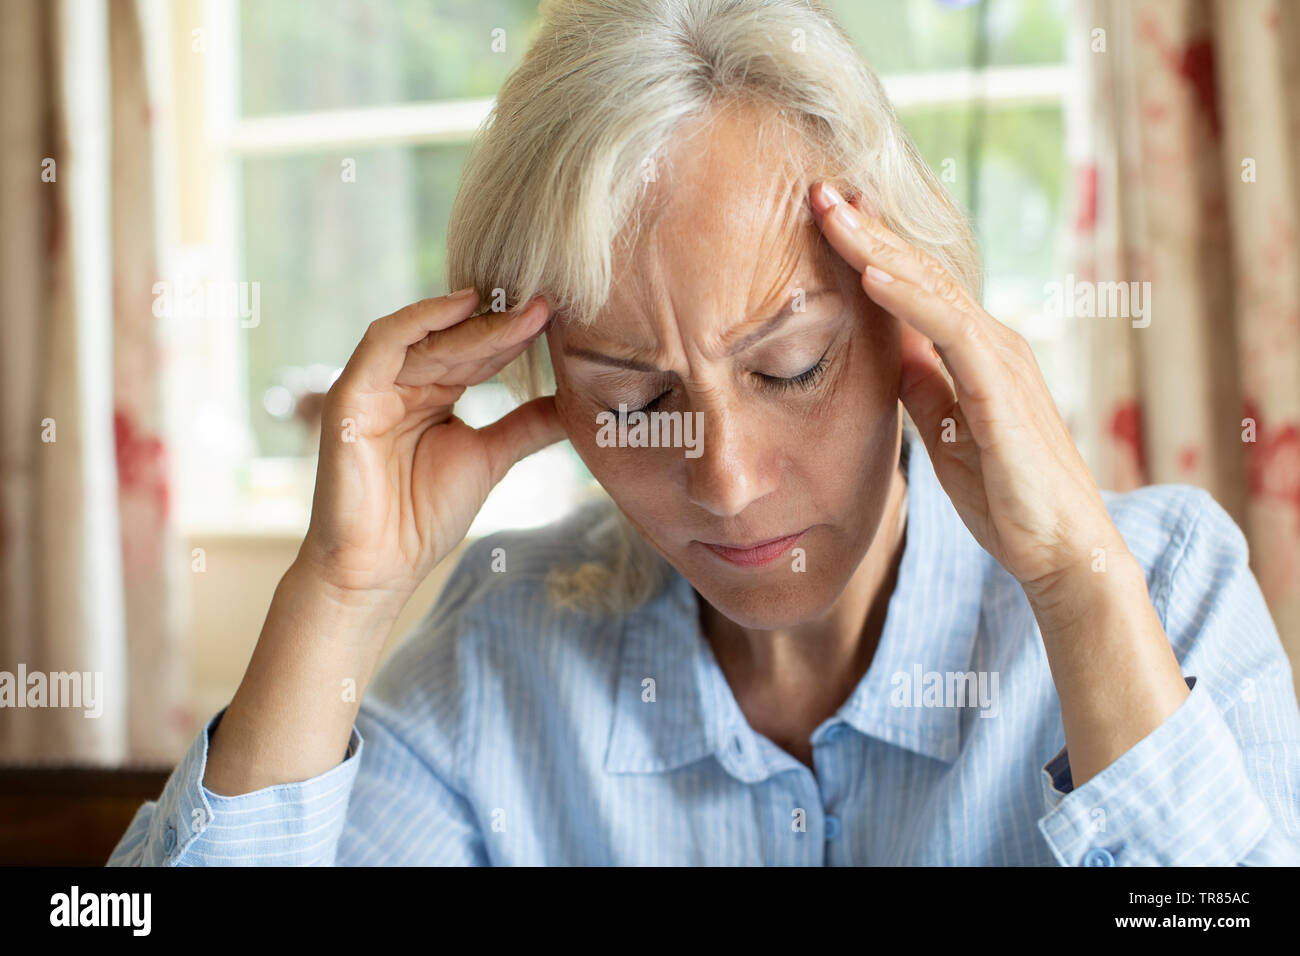 Senior Woman At Home Suffering With Migraine Headache - Stock Image